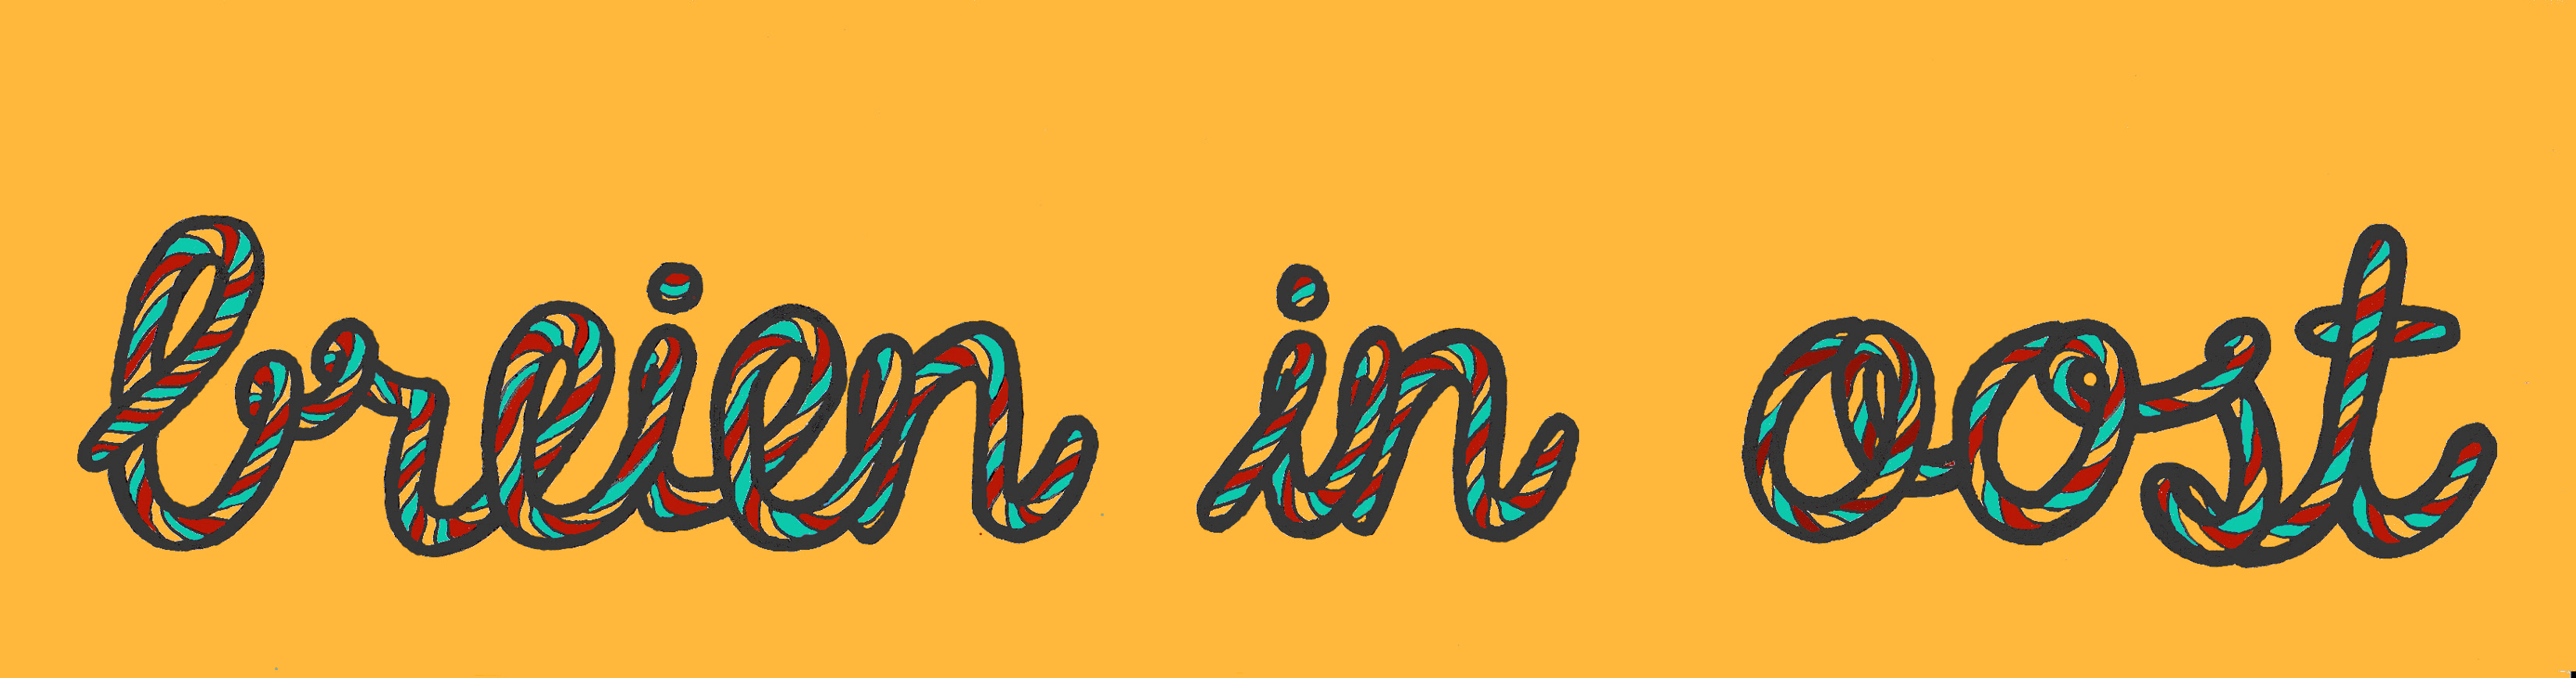 yarn font free download - photo #38